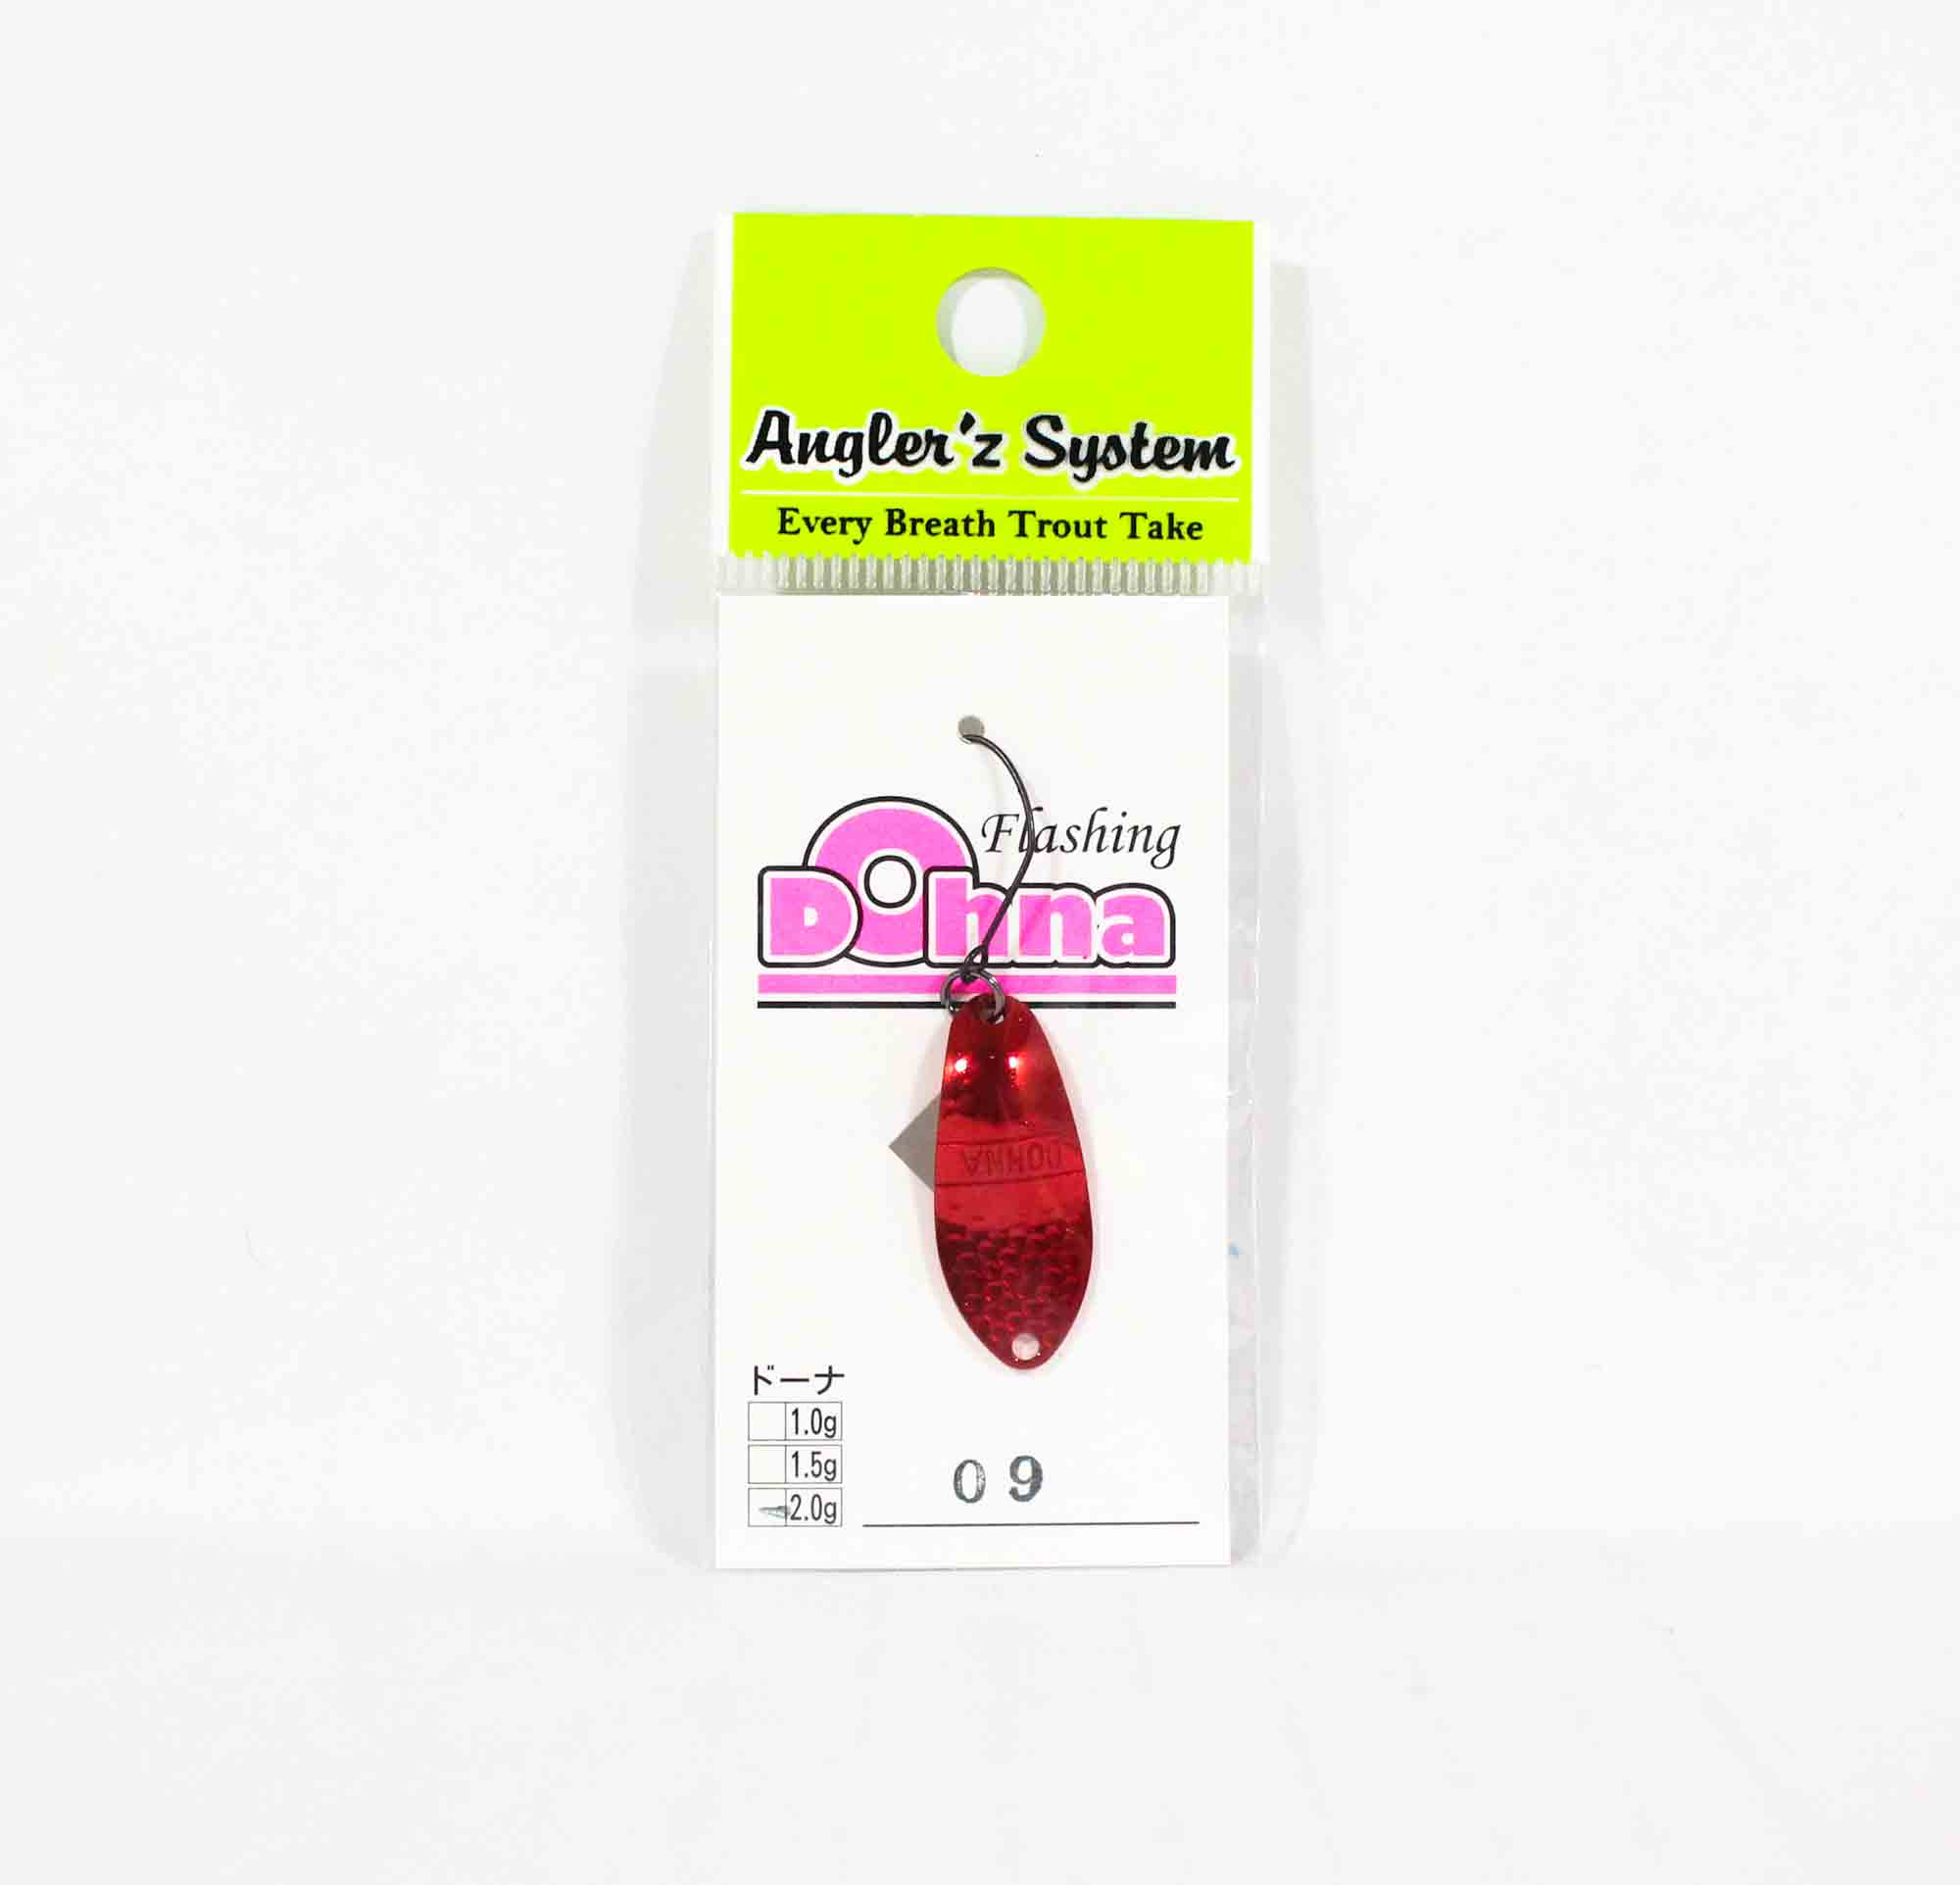 Anglers System Antem Dohna 2.0 grams Spoon Sinking Lure 09 (4534)